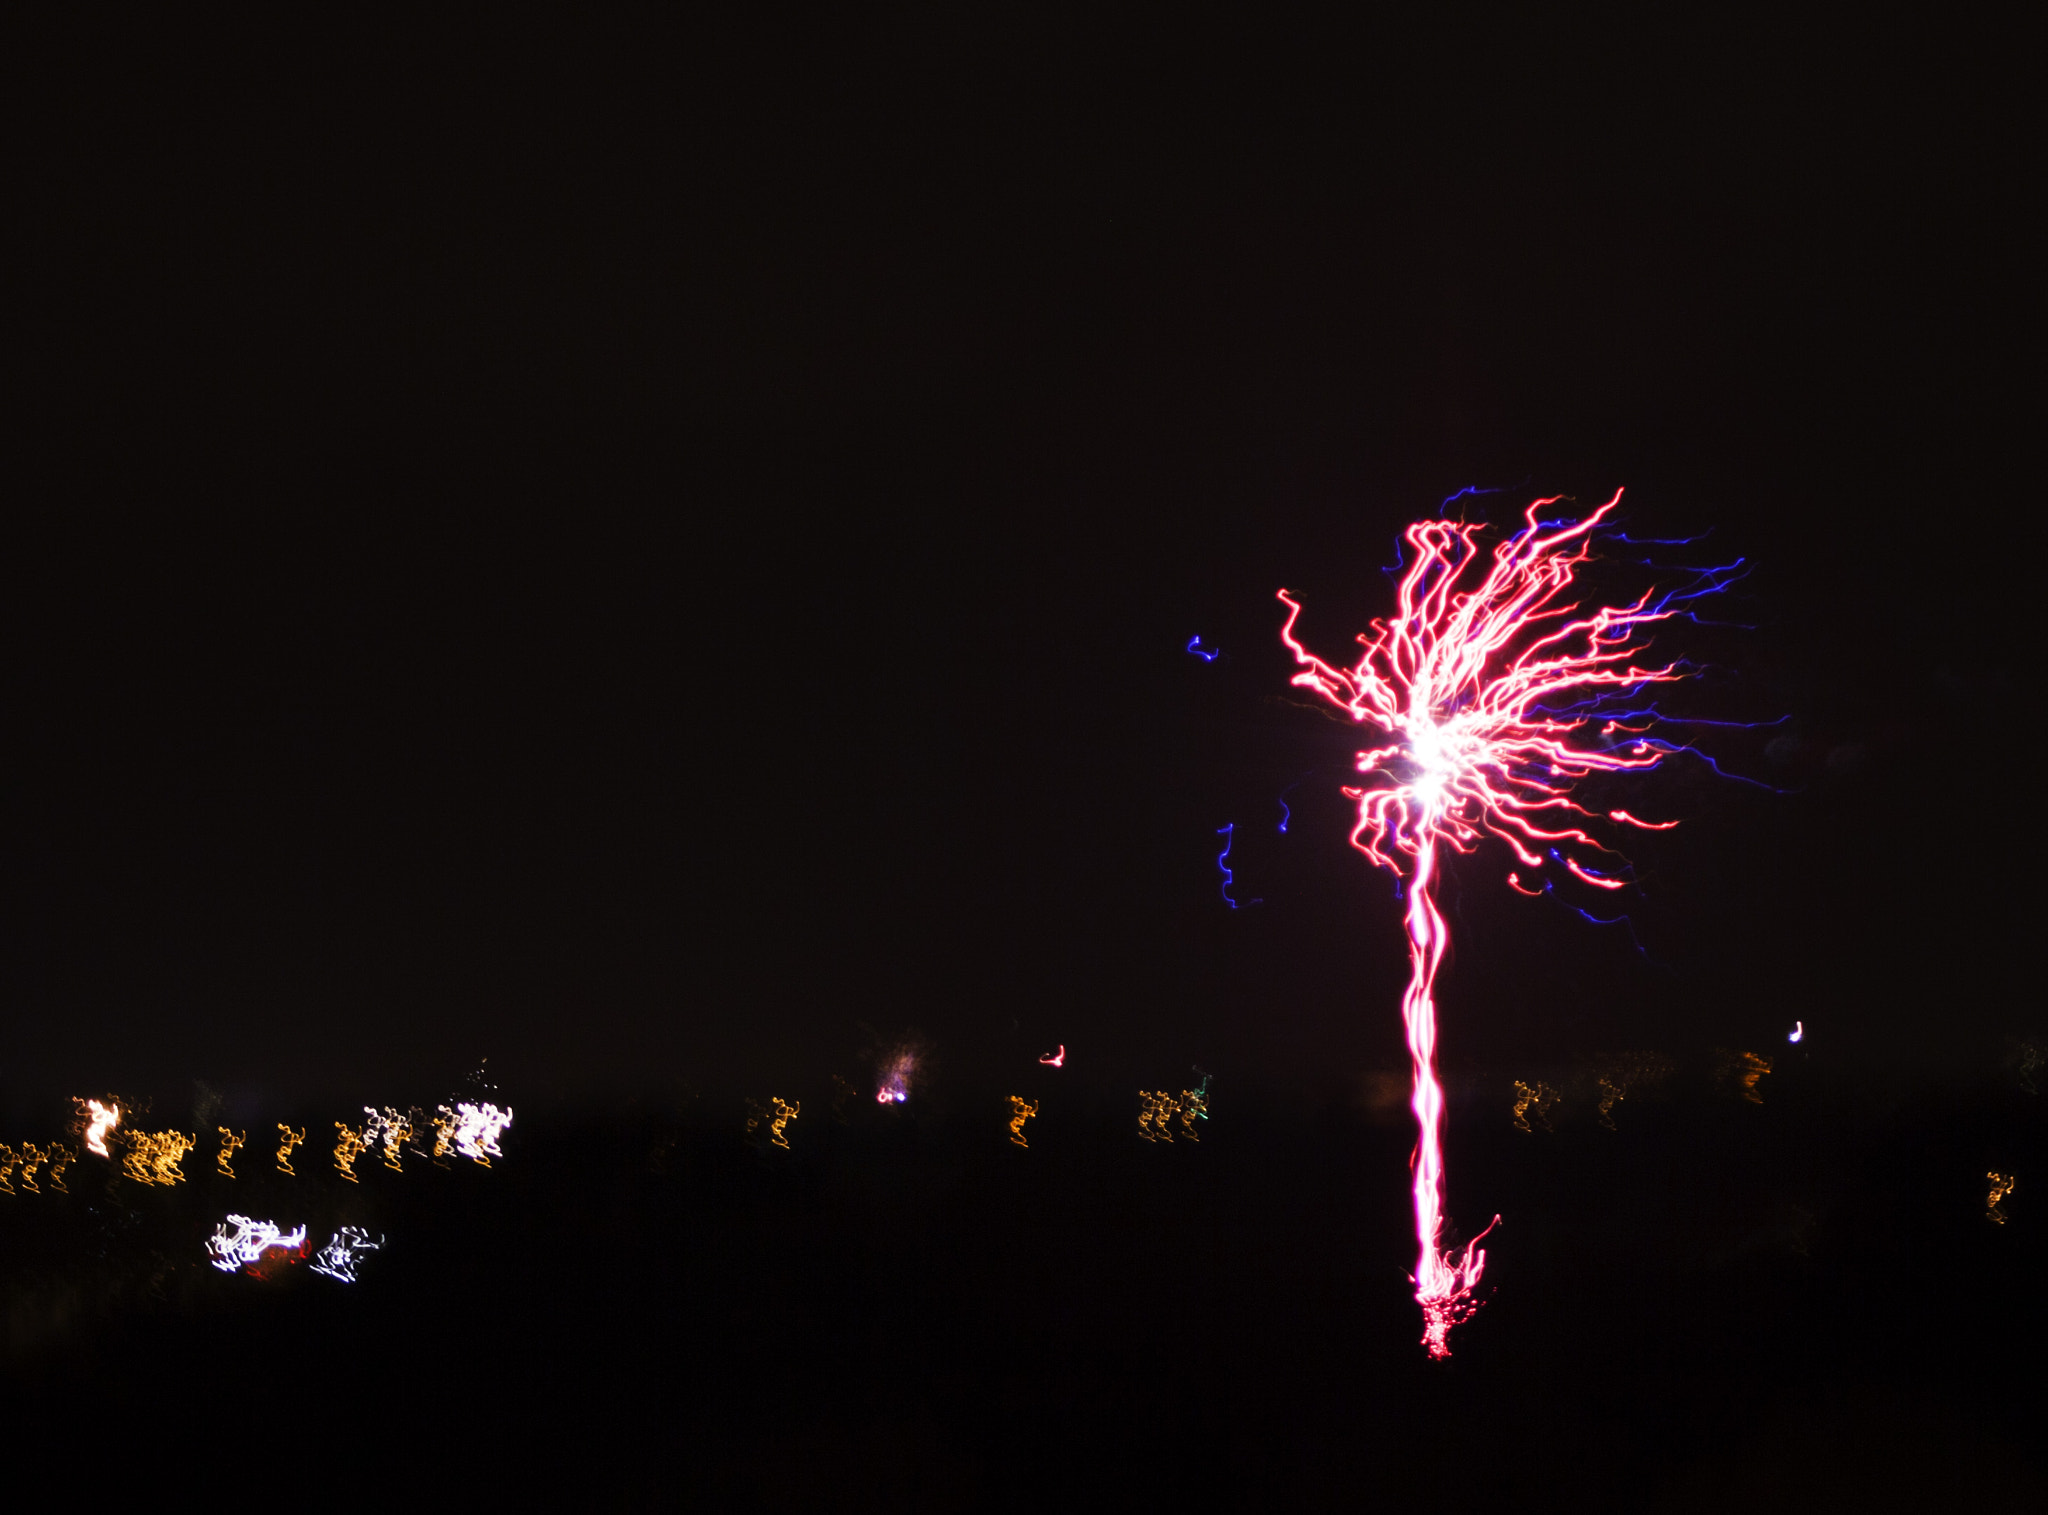 Photograph Generic Firework Image by Ellie Melling on 500px